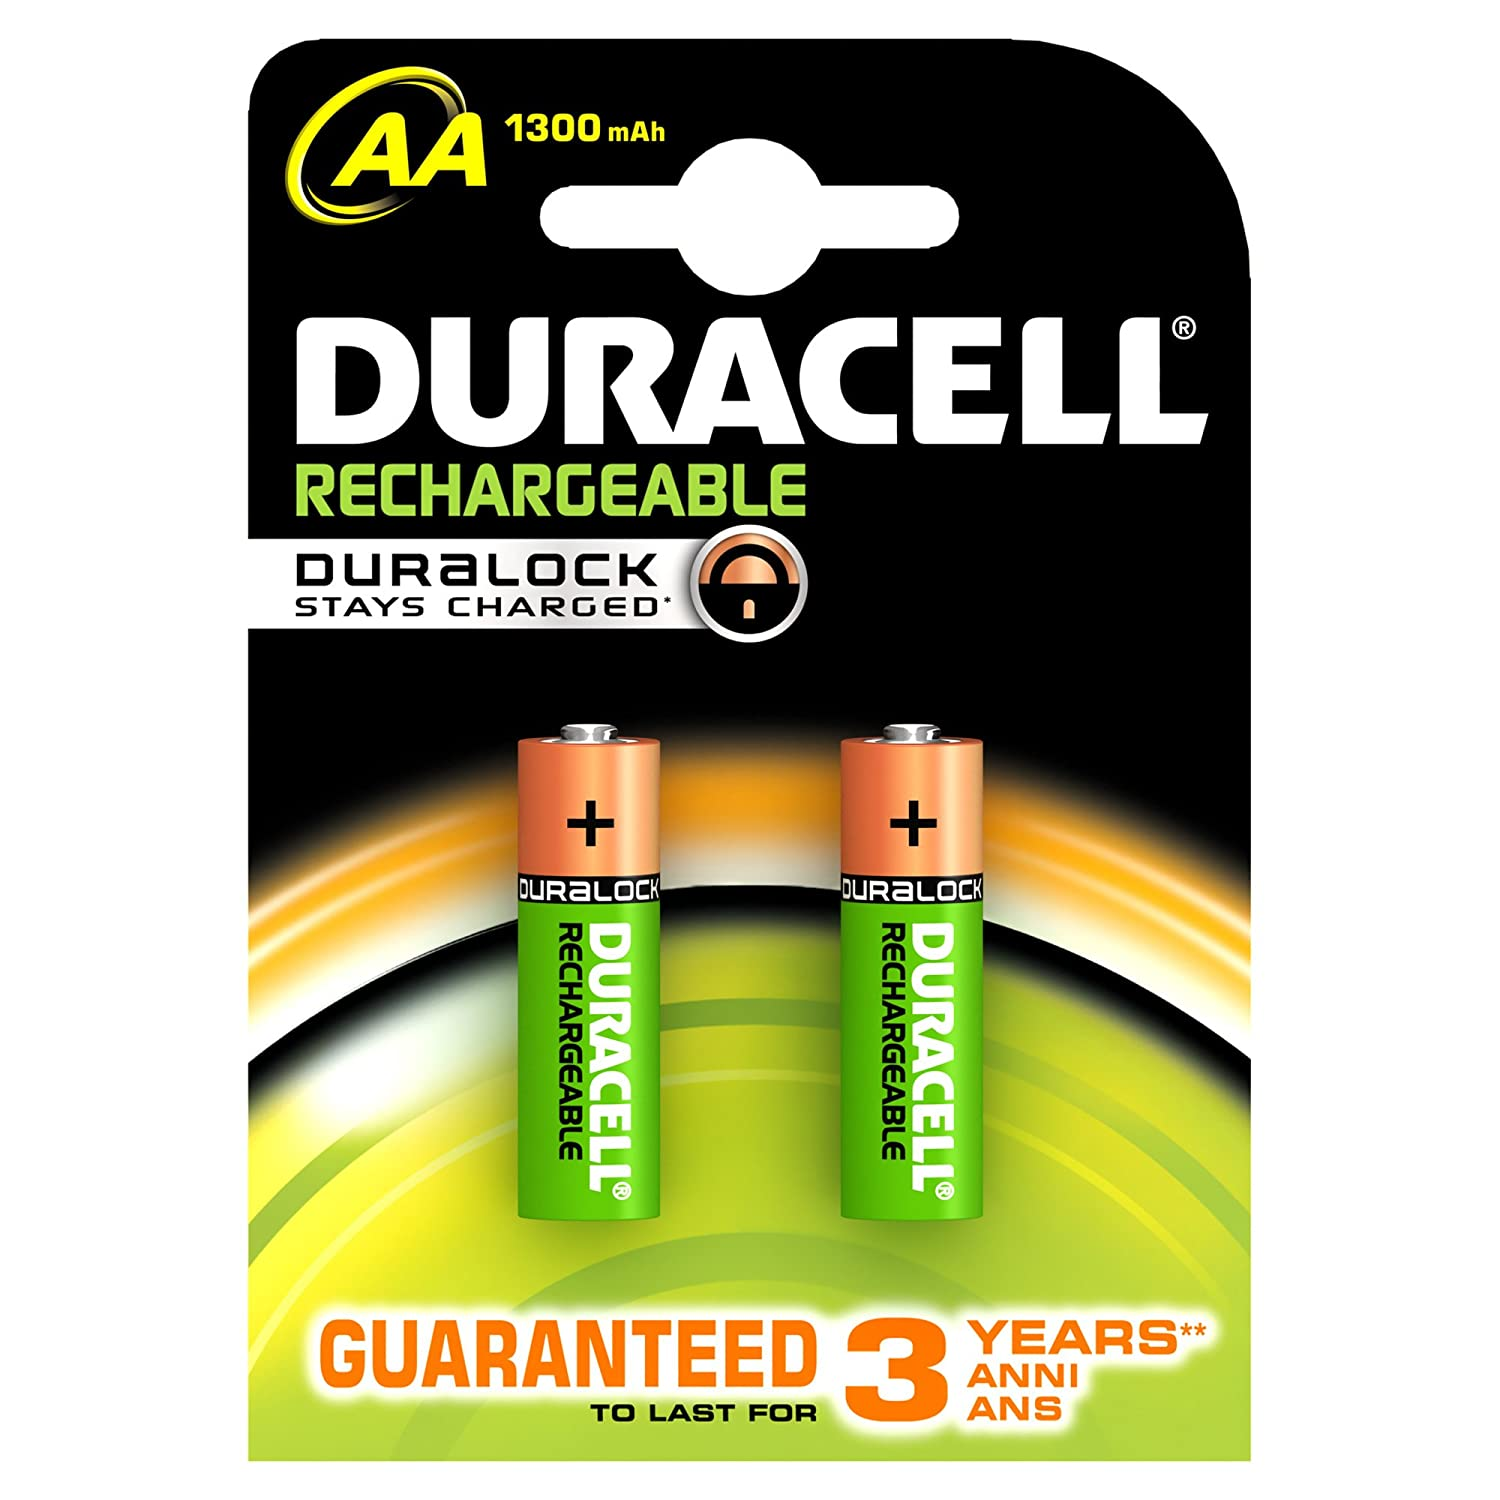 Duracell Stays Charged, AA - Batería/Pila recargable (AA ...